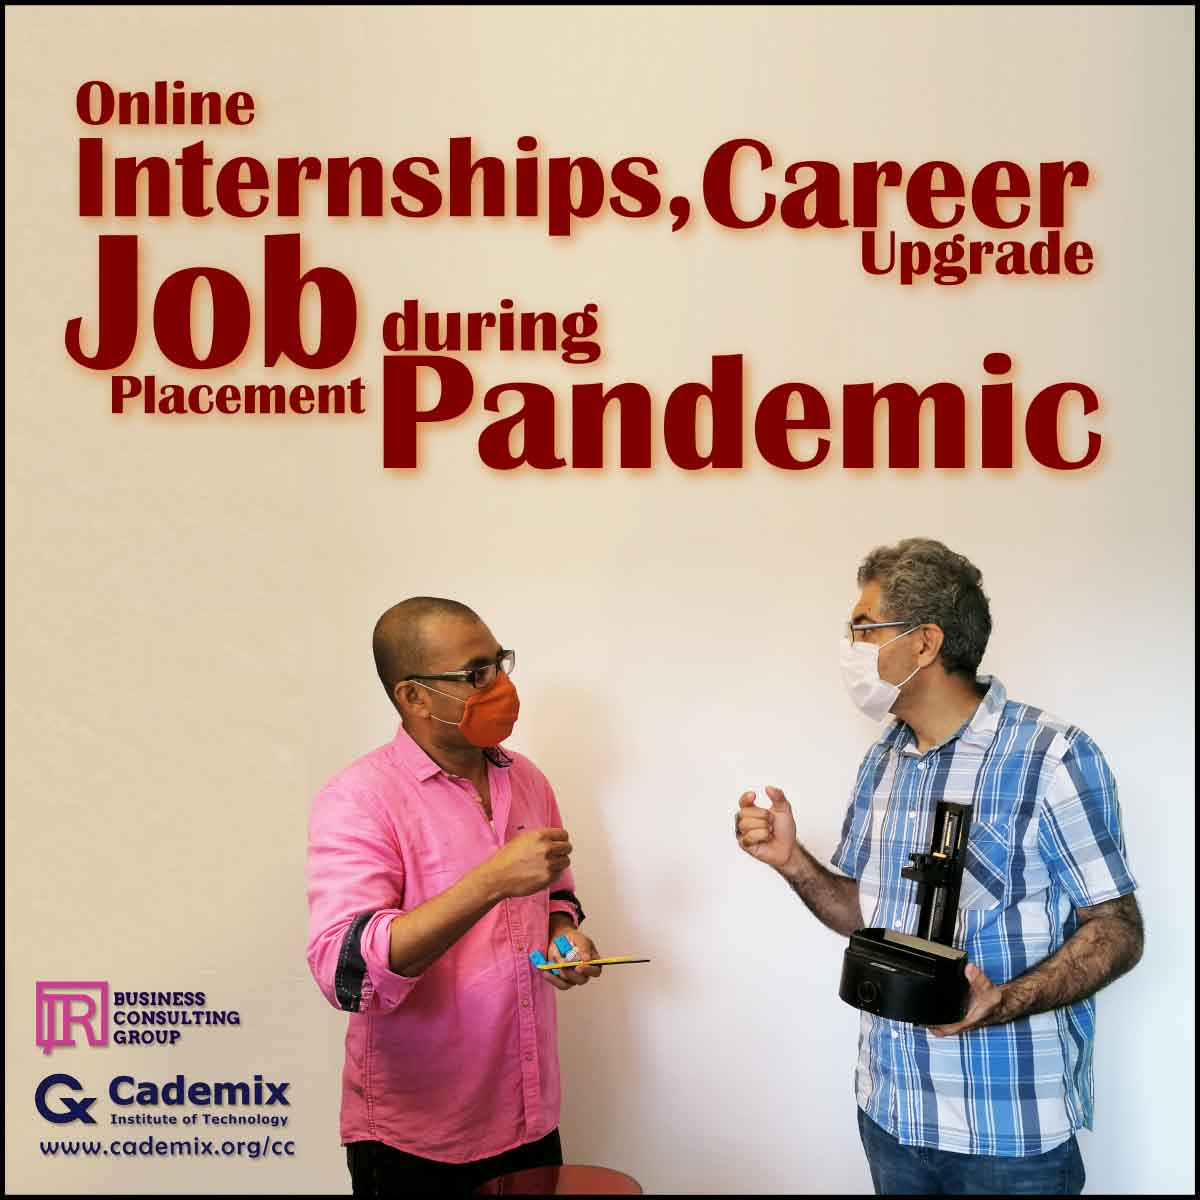 Online Internships Career Upgrade Job Placement during COVID19 Pandemic